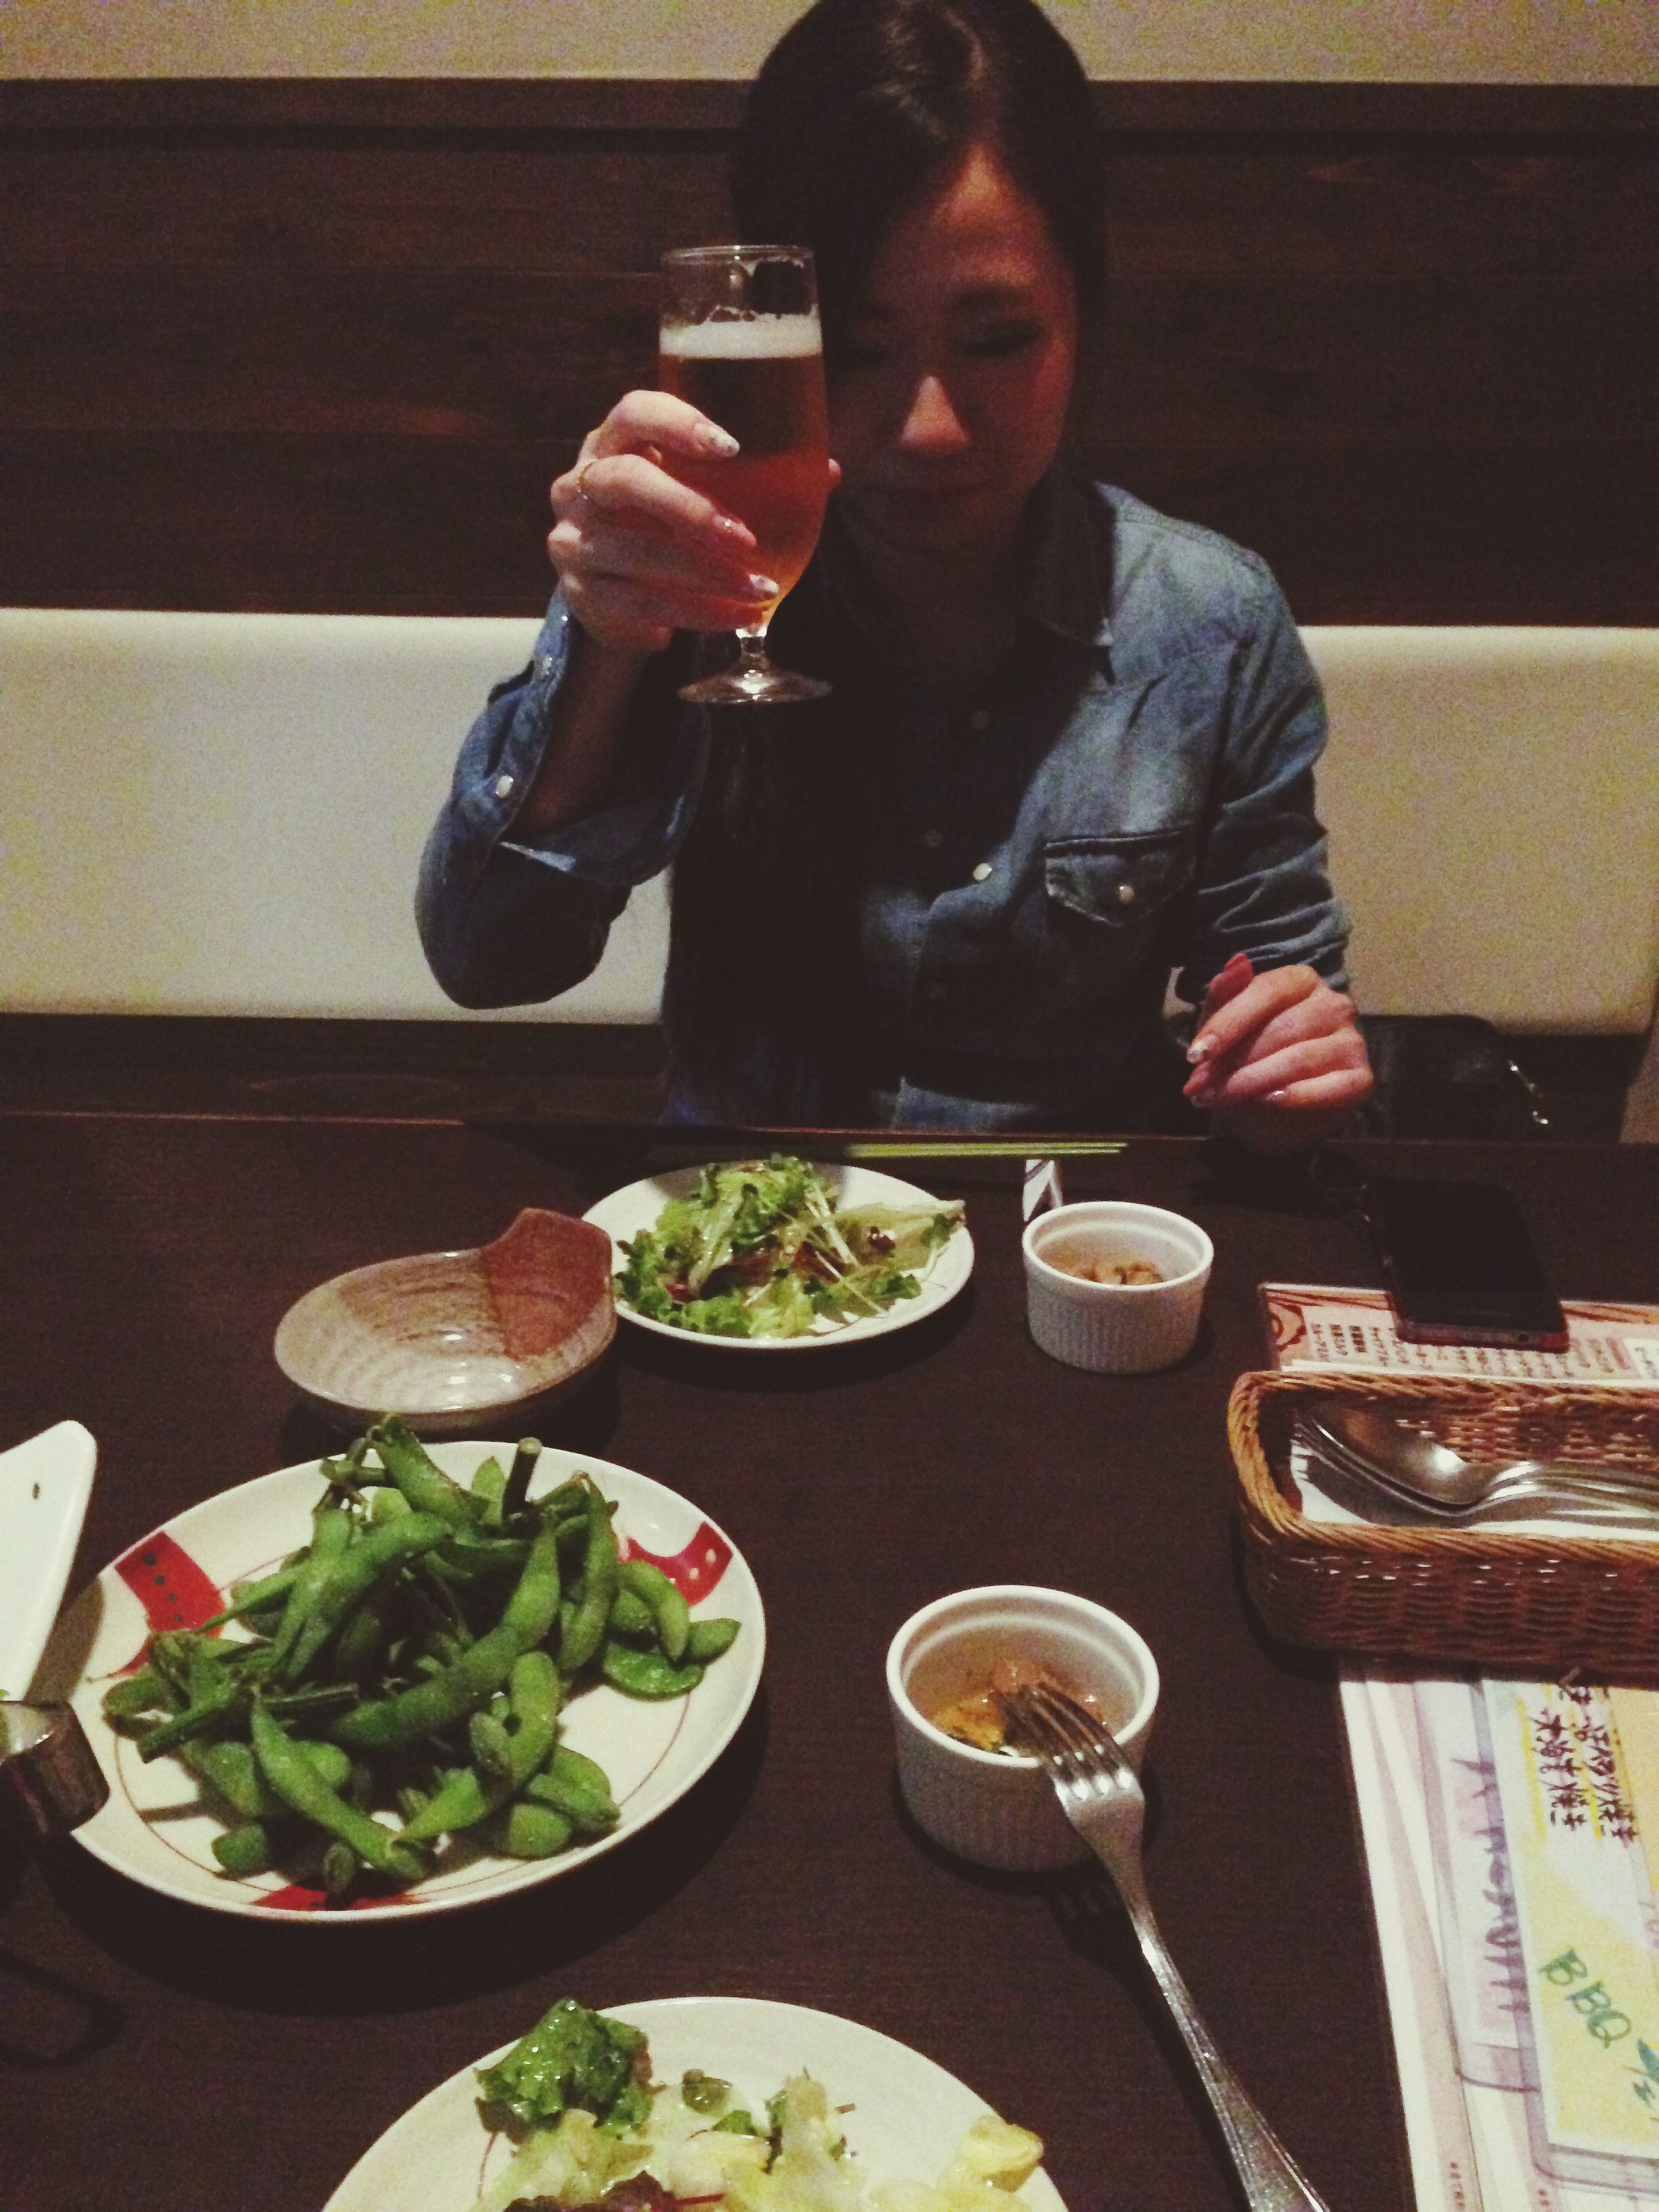 food and drink, indoors, food, freshness, table, healthy eating, plate, lifestyles, holding, leisure activity, ready-to-eat, restaurant, meal, preparation, casual clothing, drink, sitting, vegetable